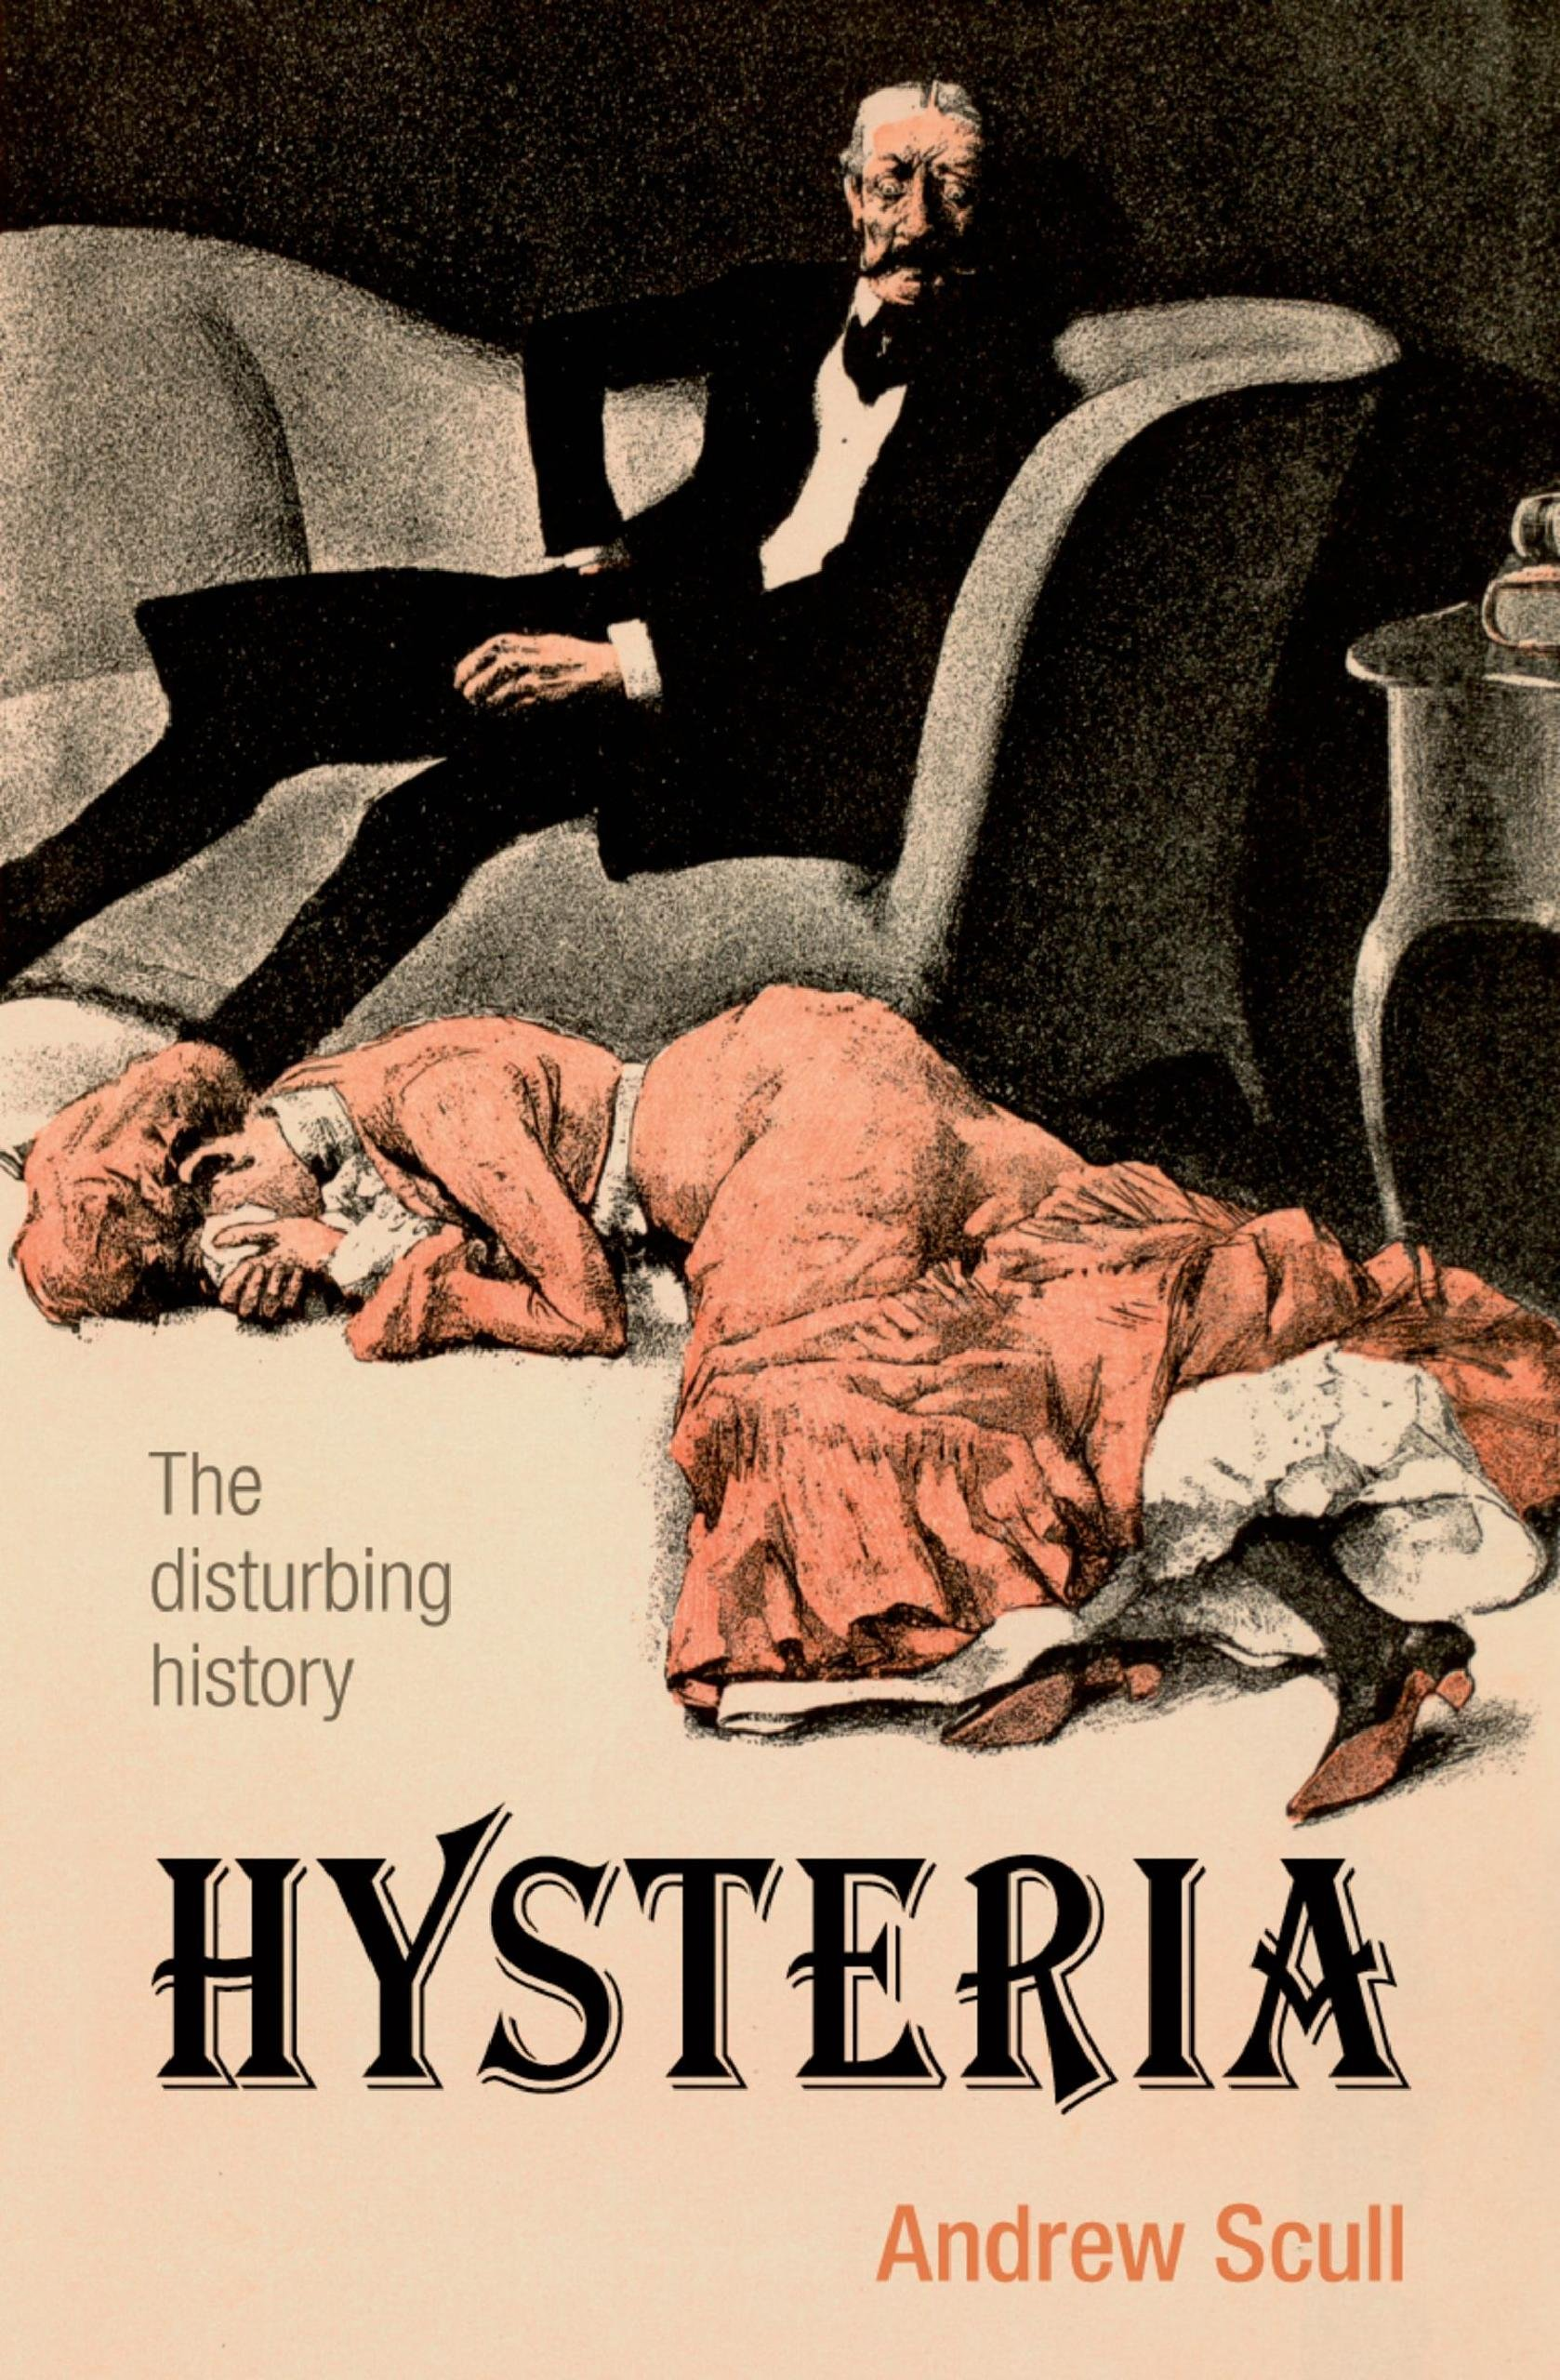 Hysteria: The disturbing history - Kindle edition by Scull, Andrew. Health,  Fitness & Dieting Kindle eBooks @ Amazon.com.